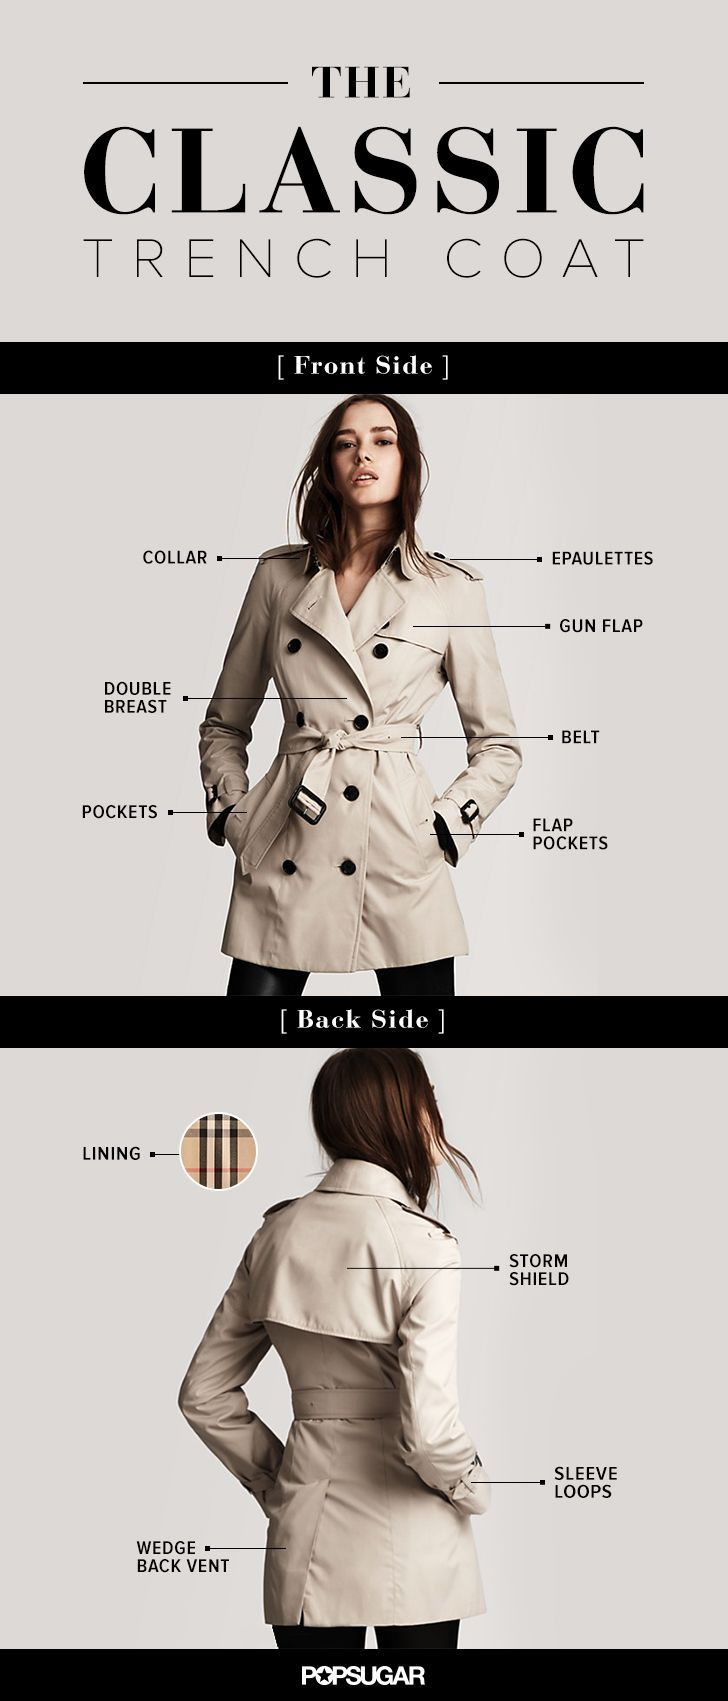 What you should know before buying a trench coat